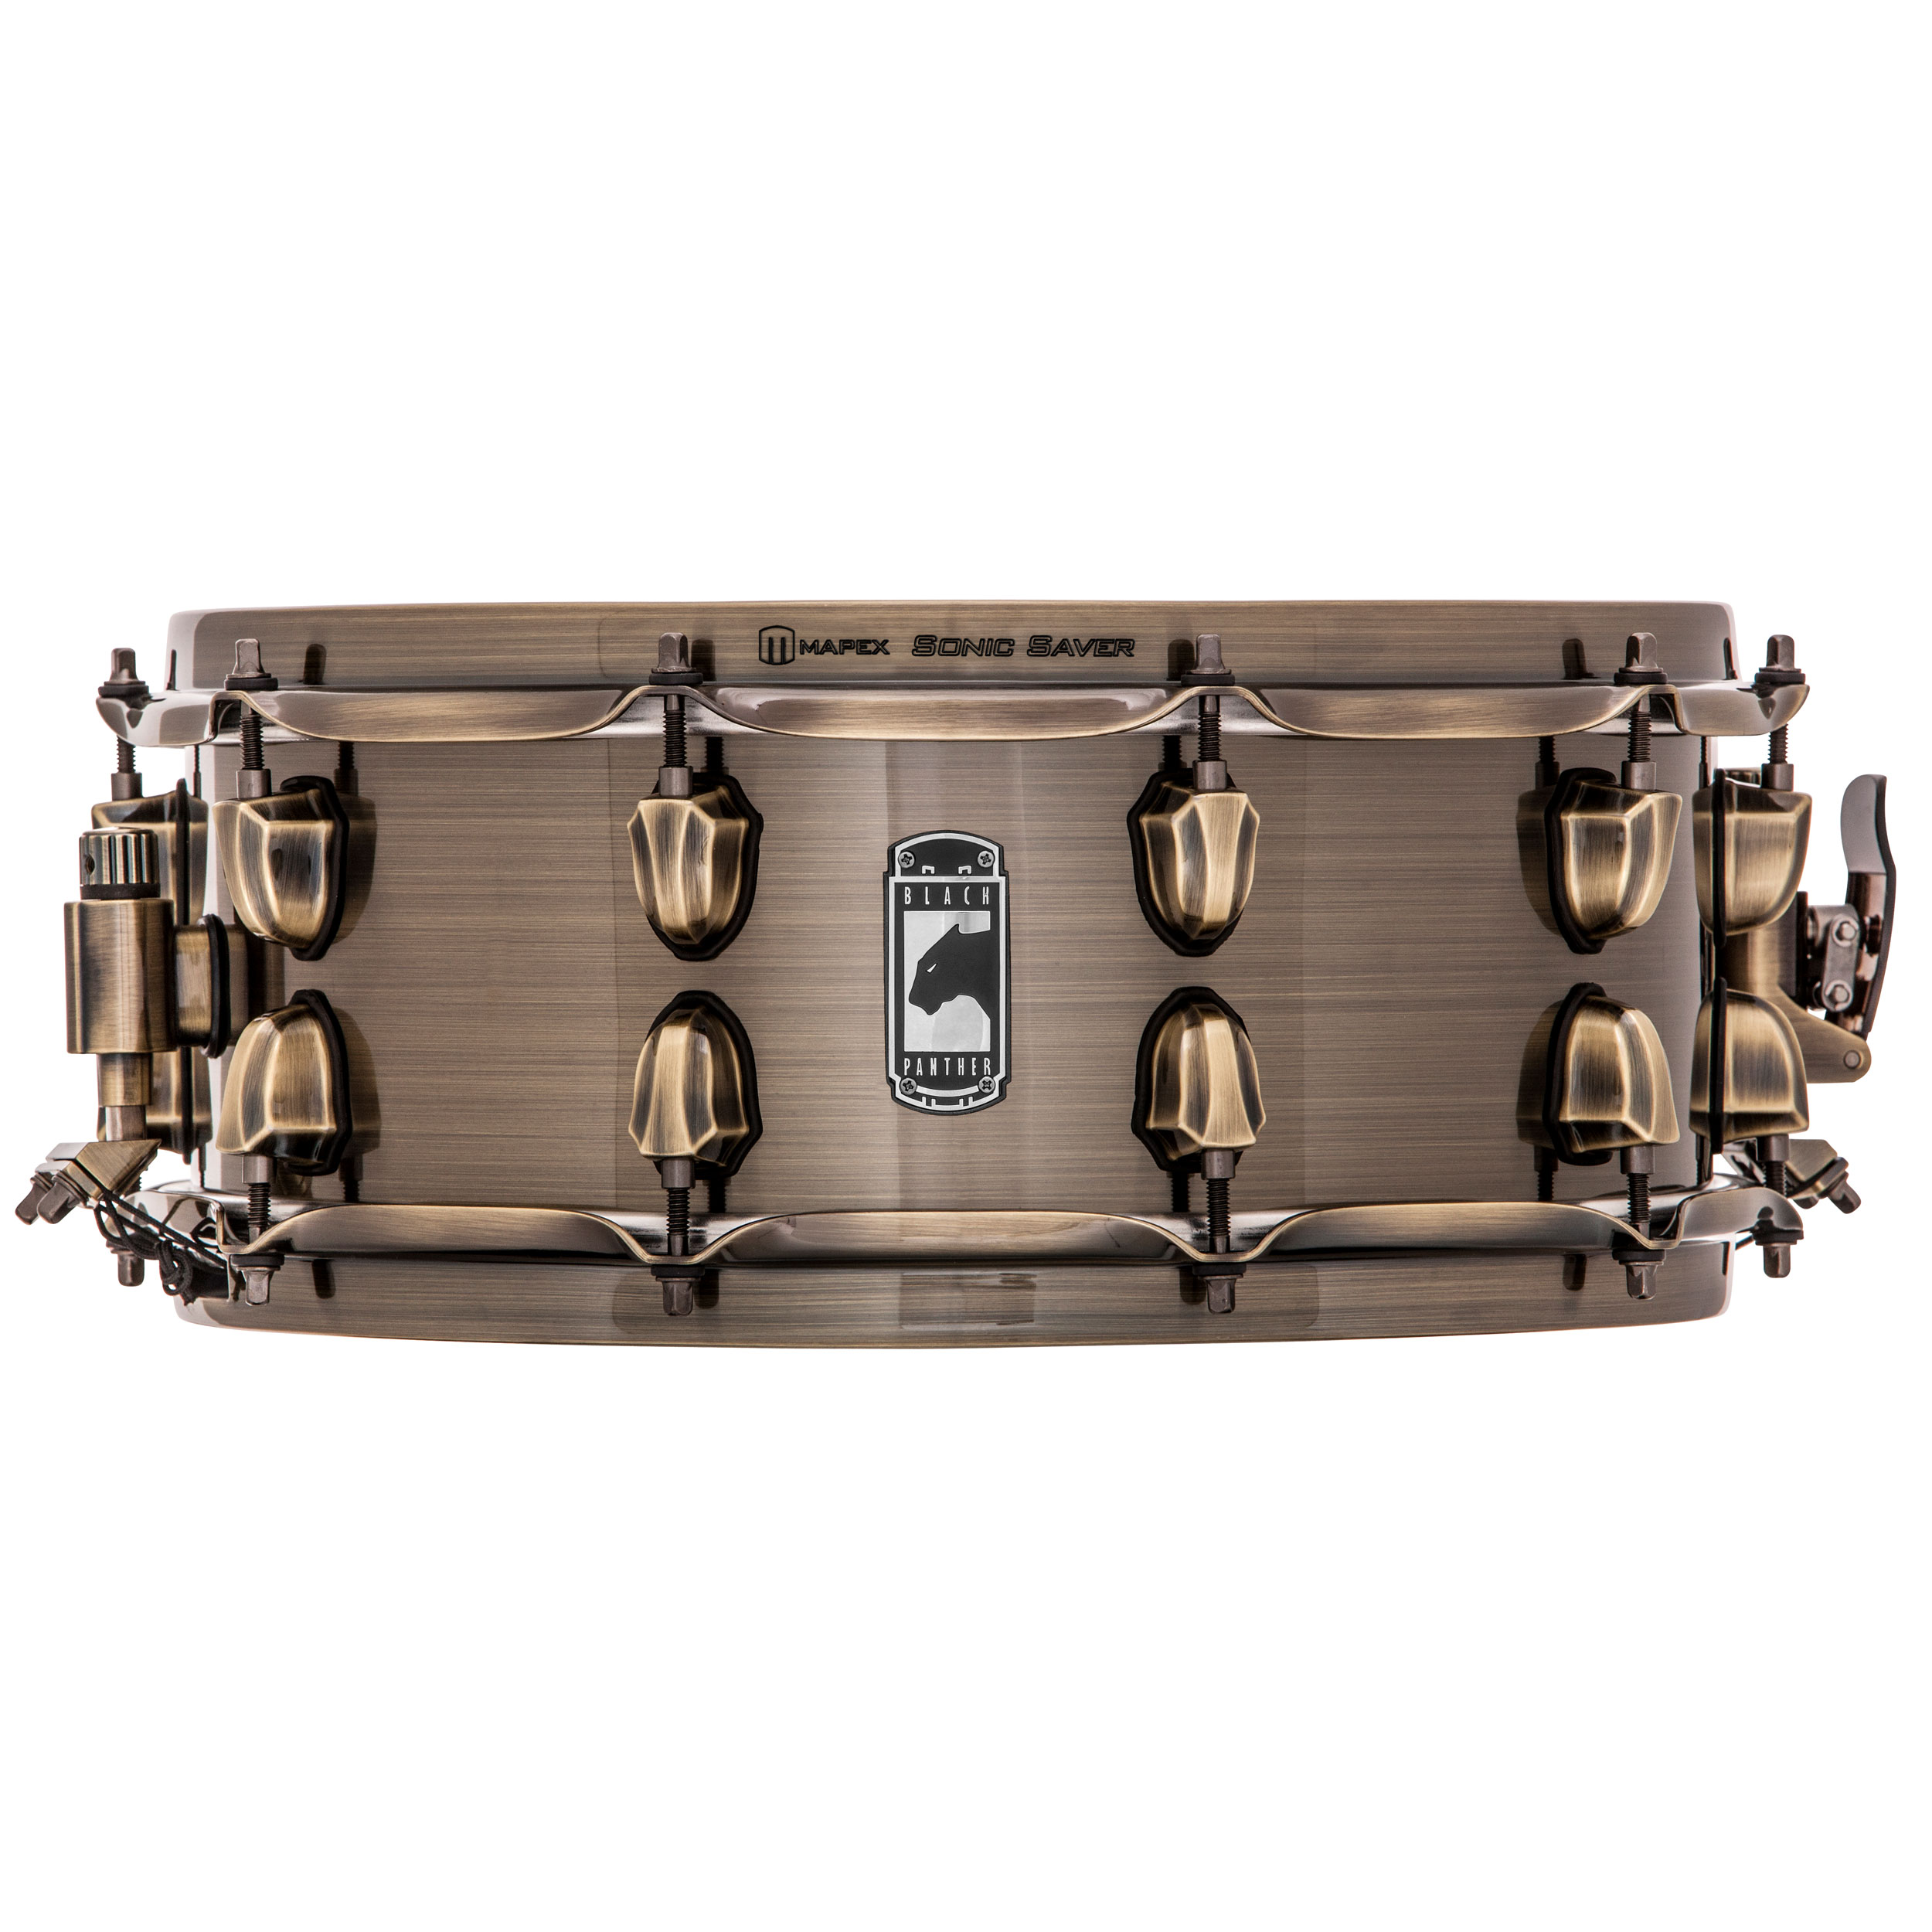 "Mapex 14"" x 5.5"" Black Panther Brass Cat Snare Drum"